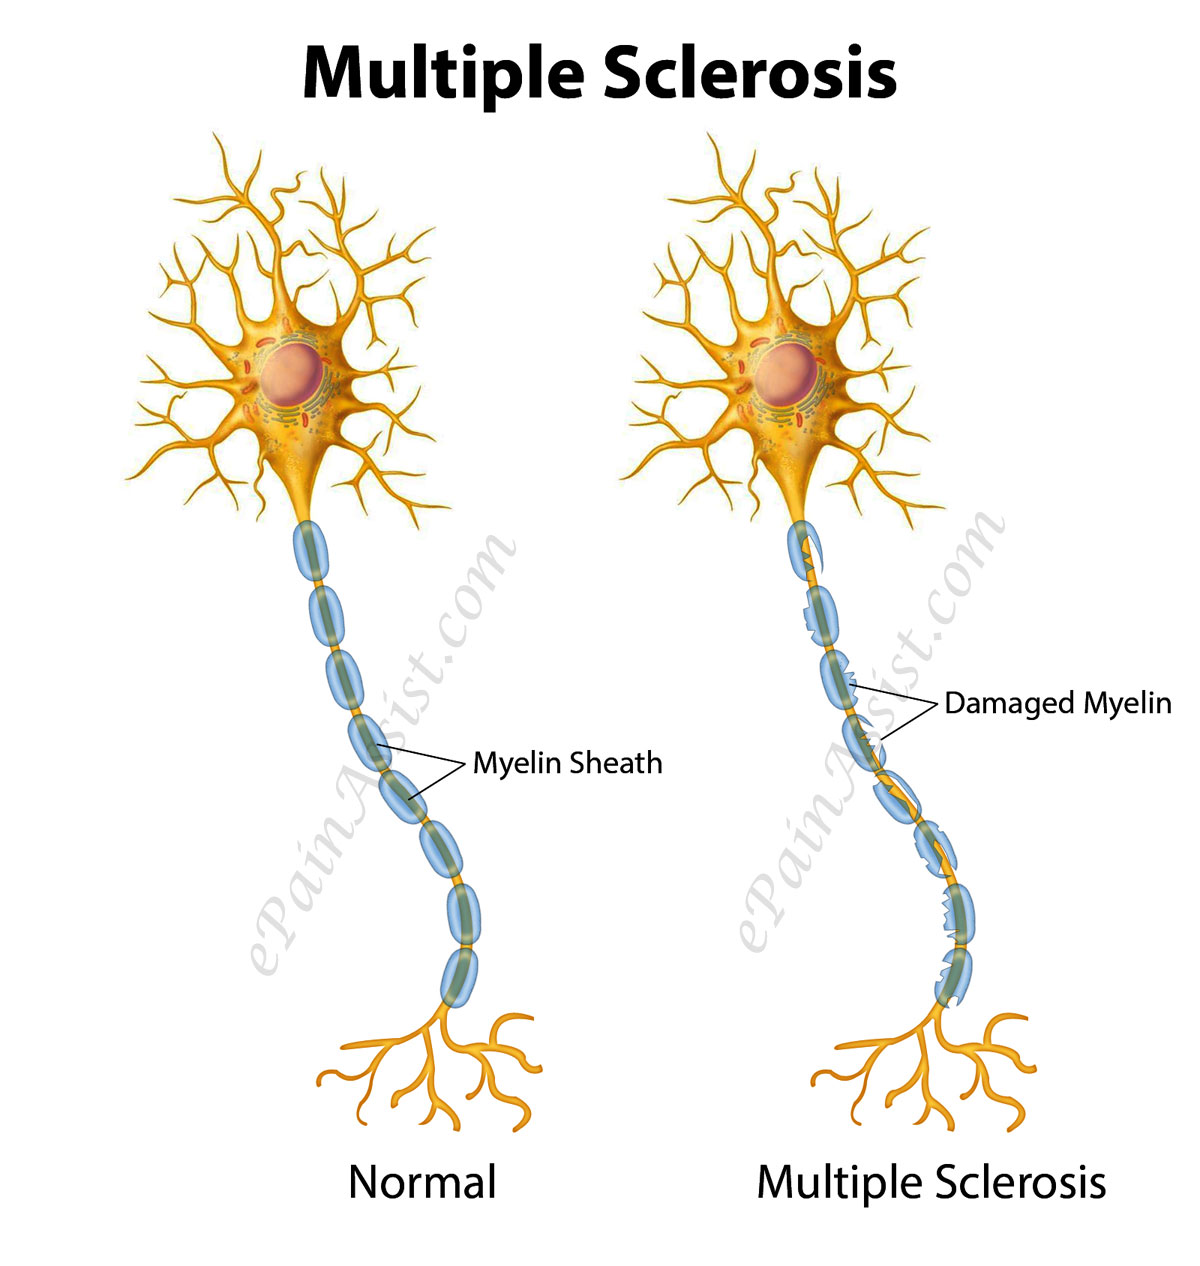 Disseminated Sclerosis